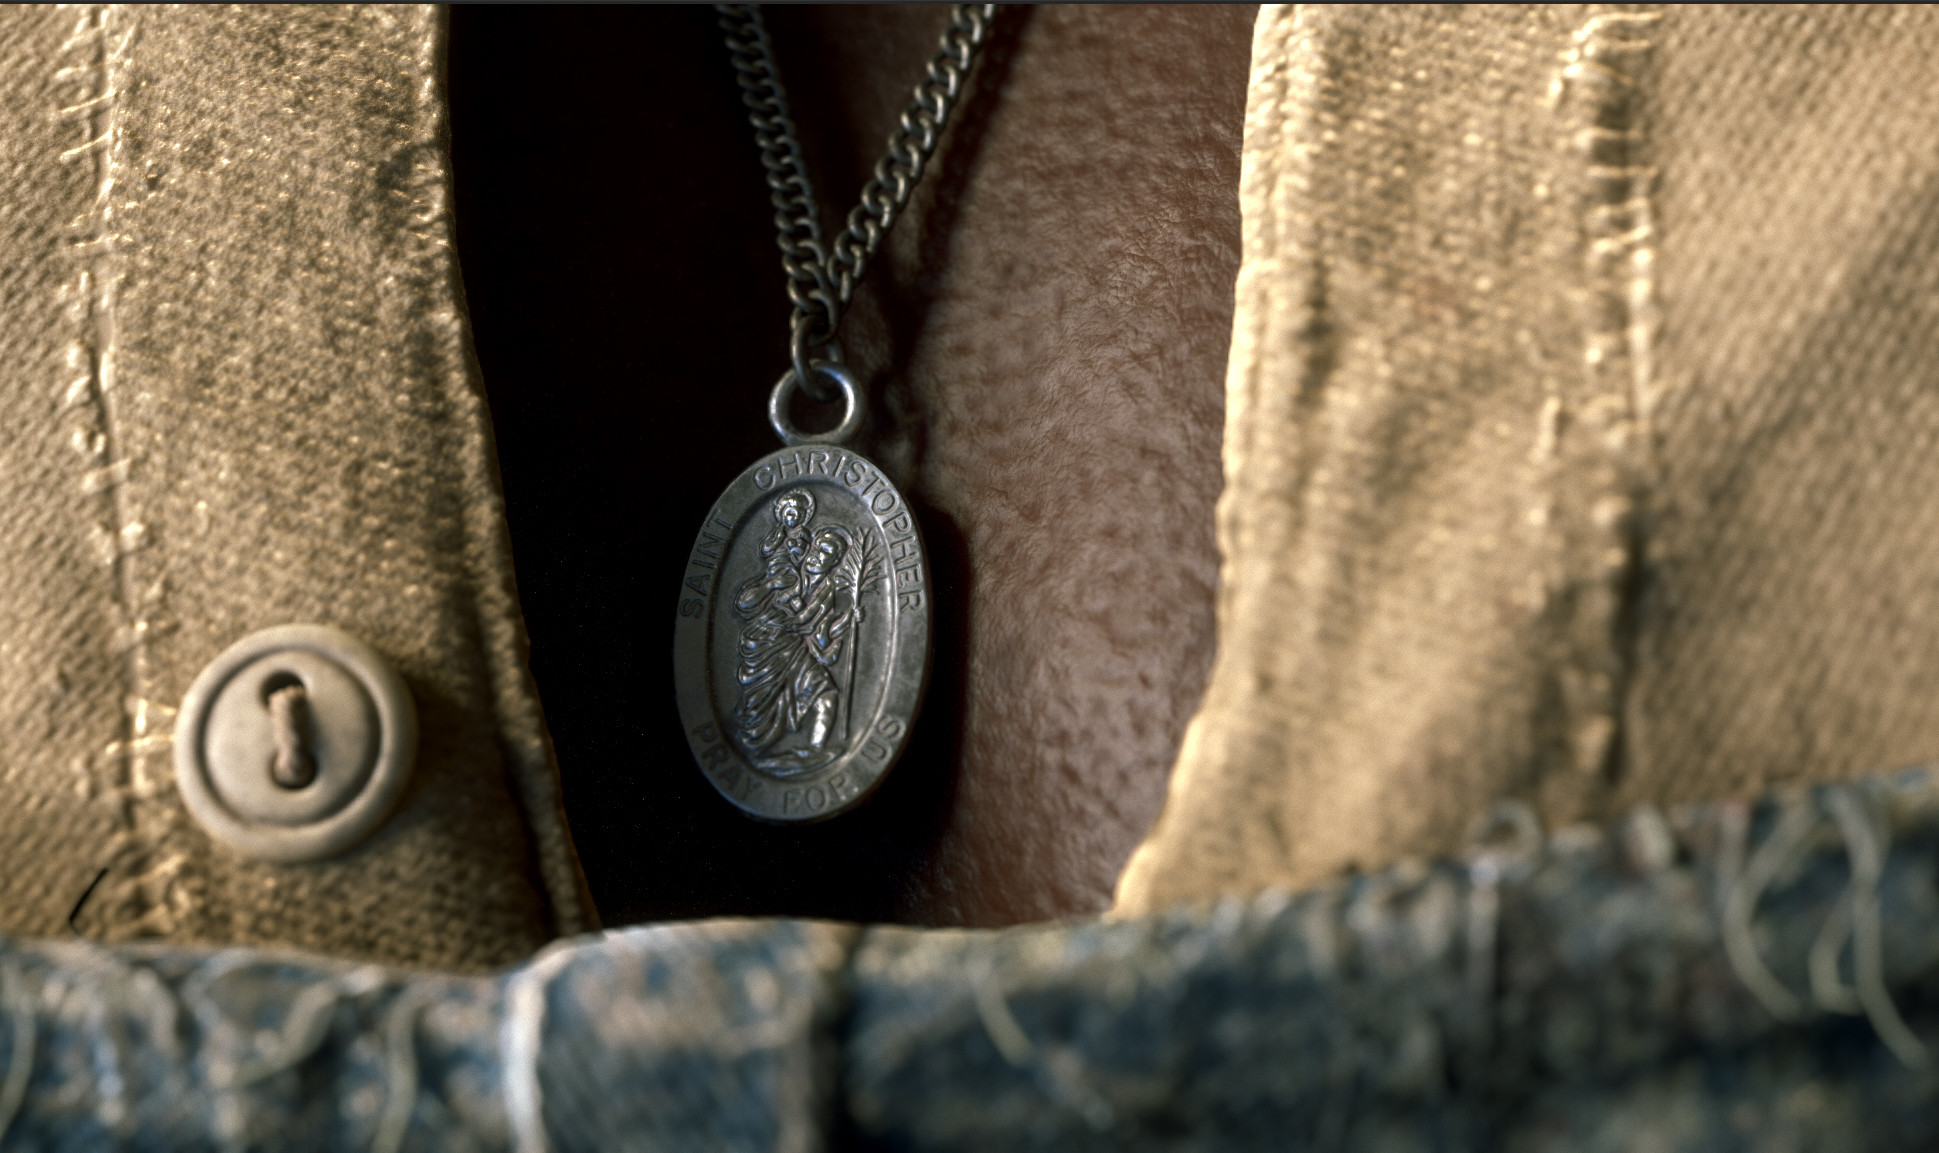 Details Pendant (Mentioned briefly in the film).